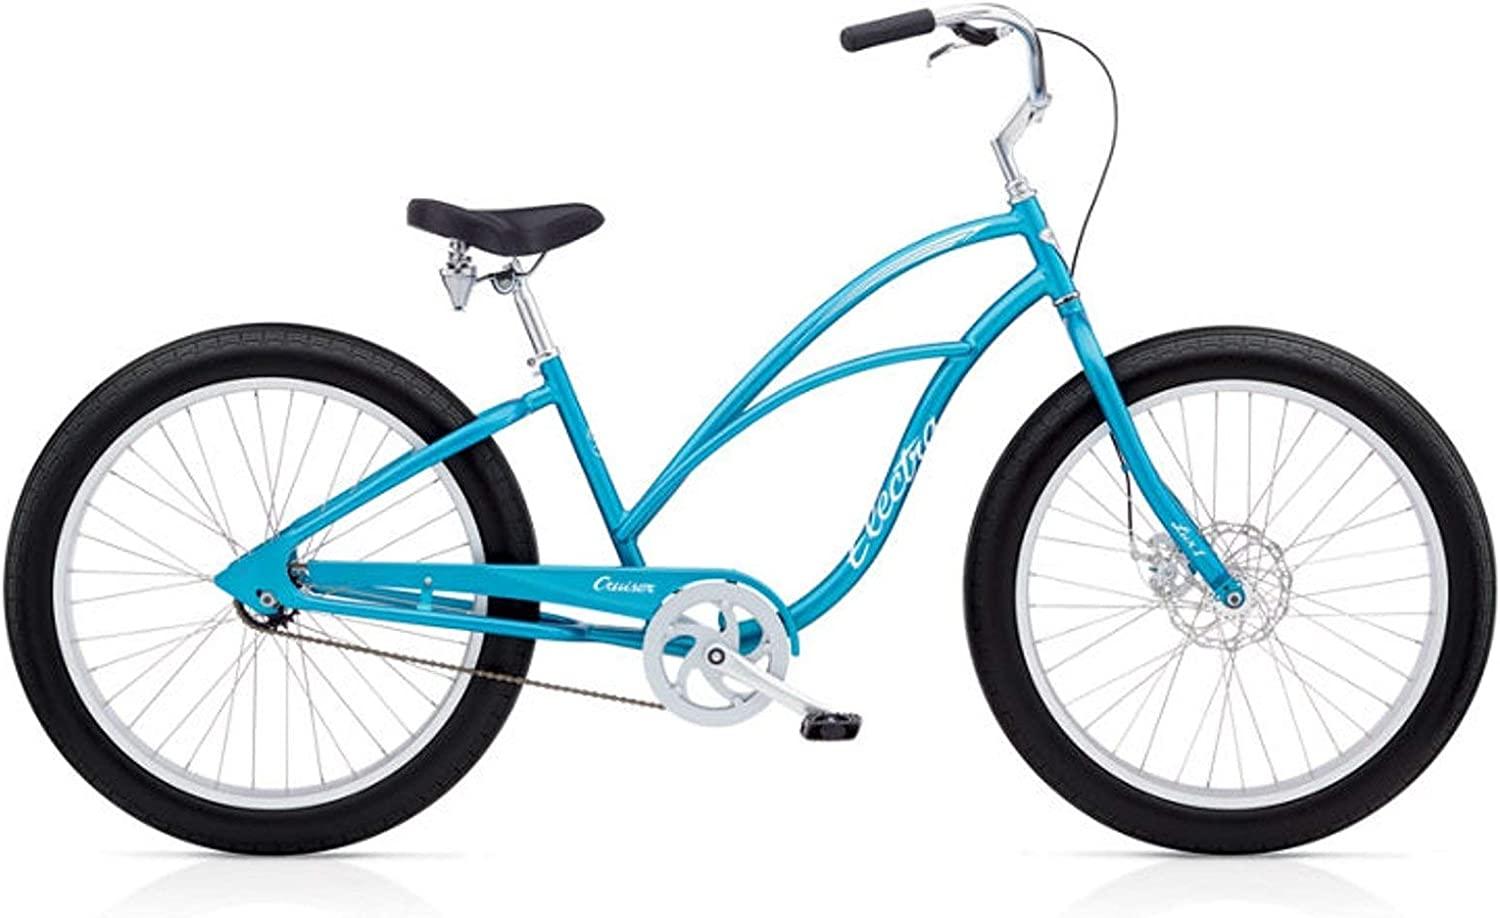 Electra Lux Fat Bike 1 Mujer bicicleta 26 Azul ladies Single Speed ...